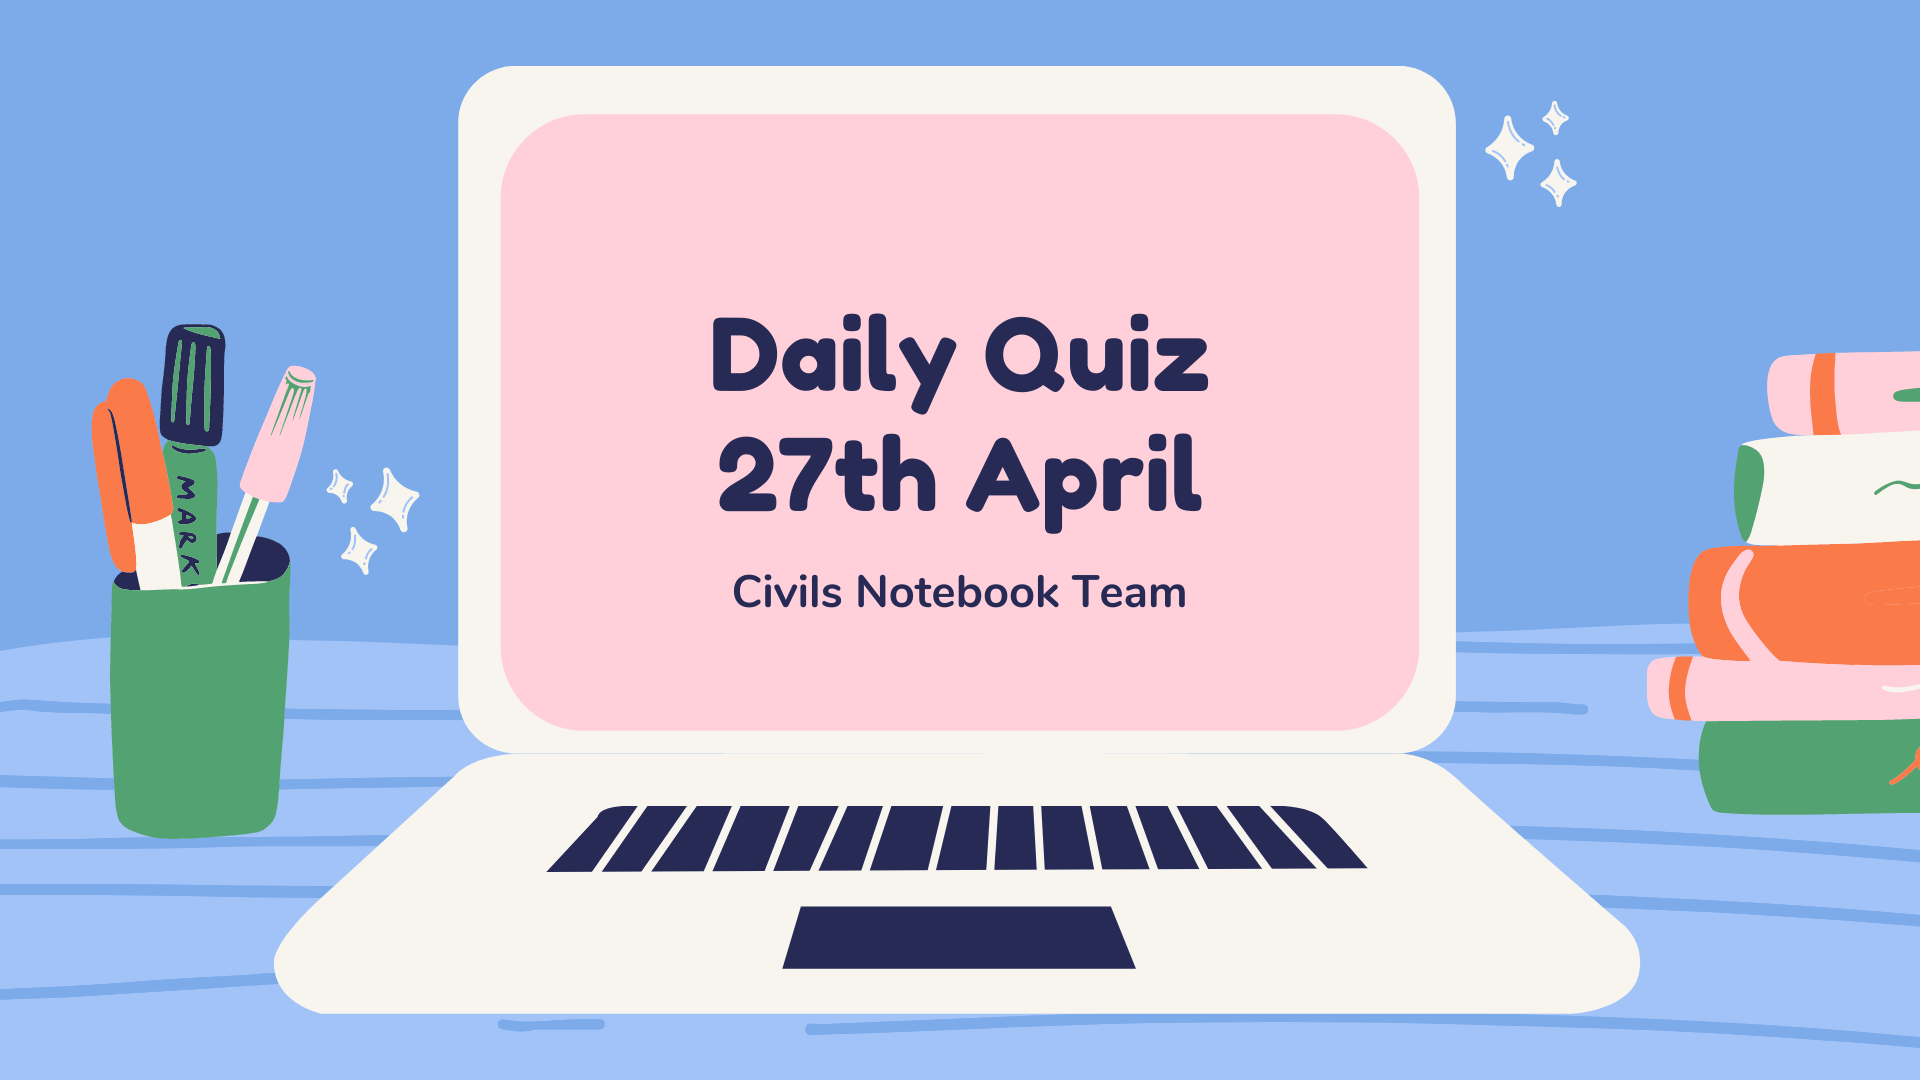 Daily Quiz: 27th April